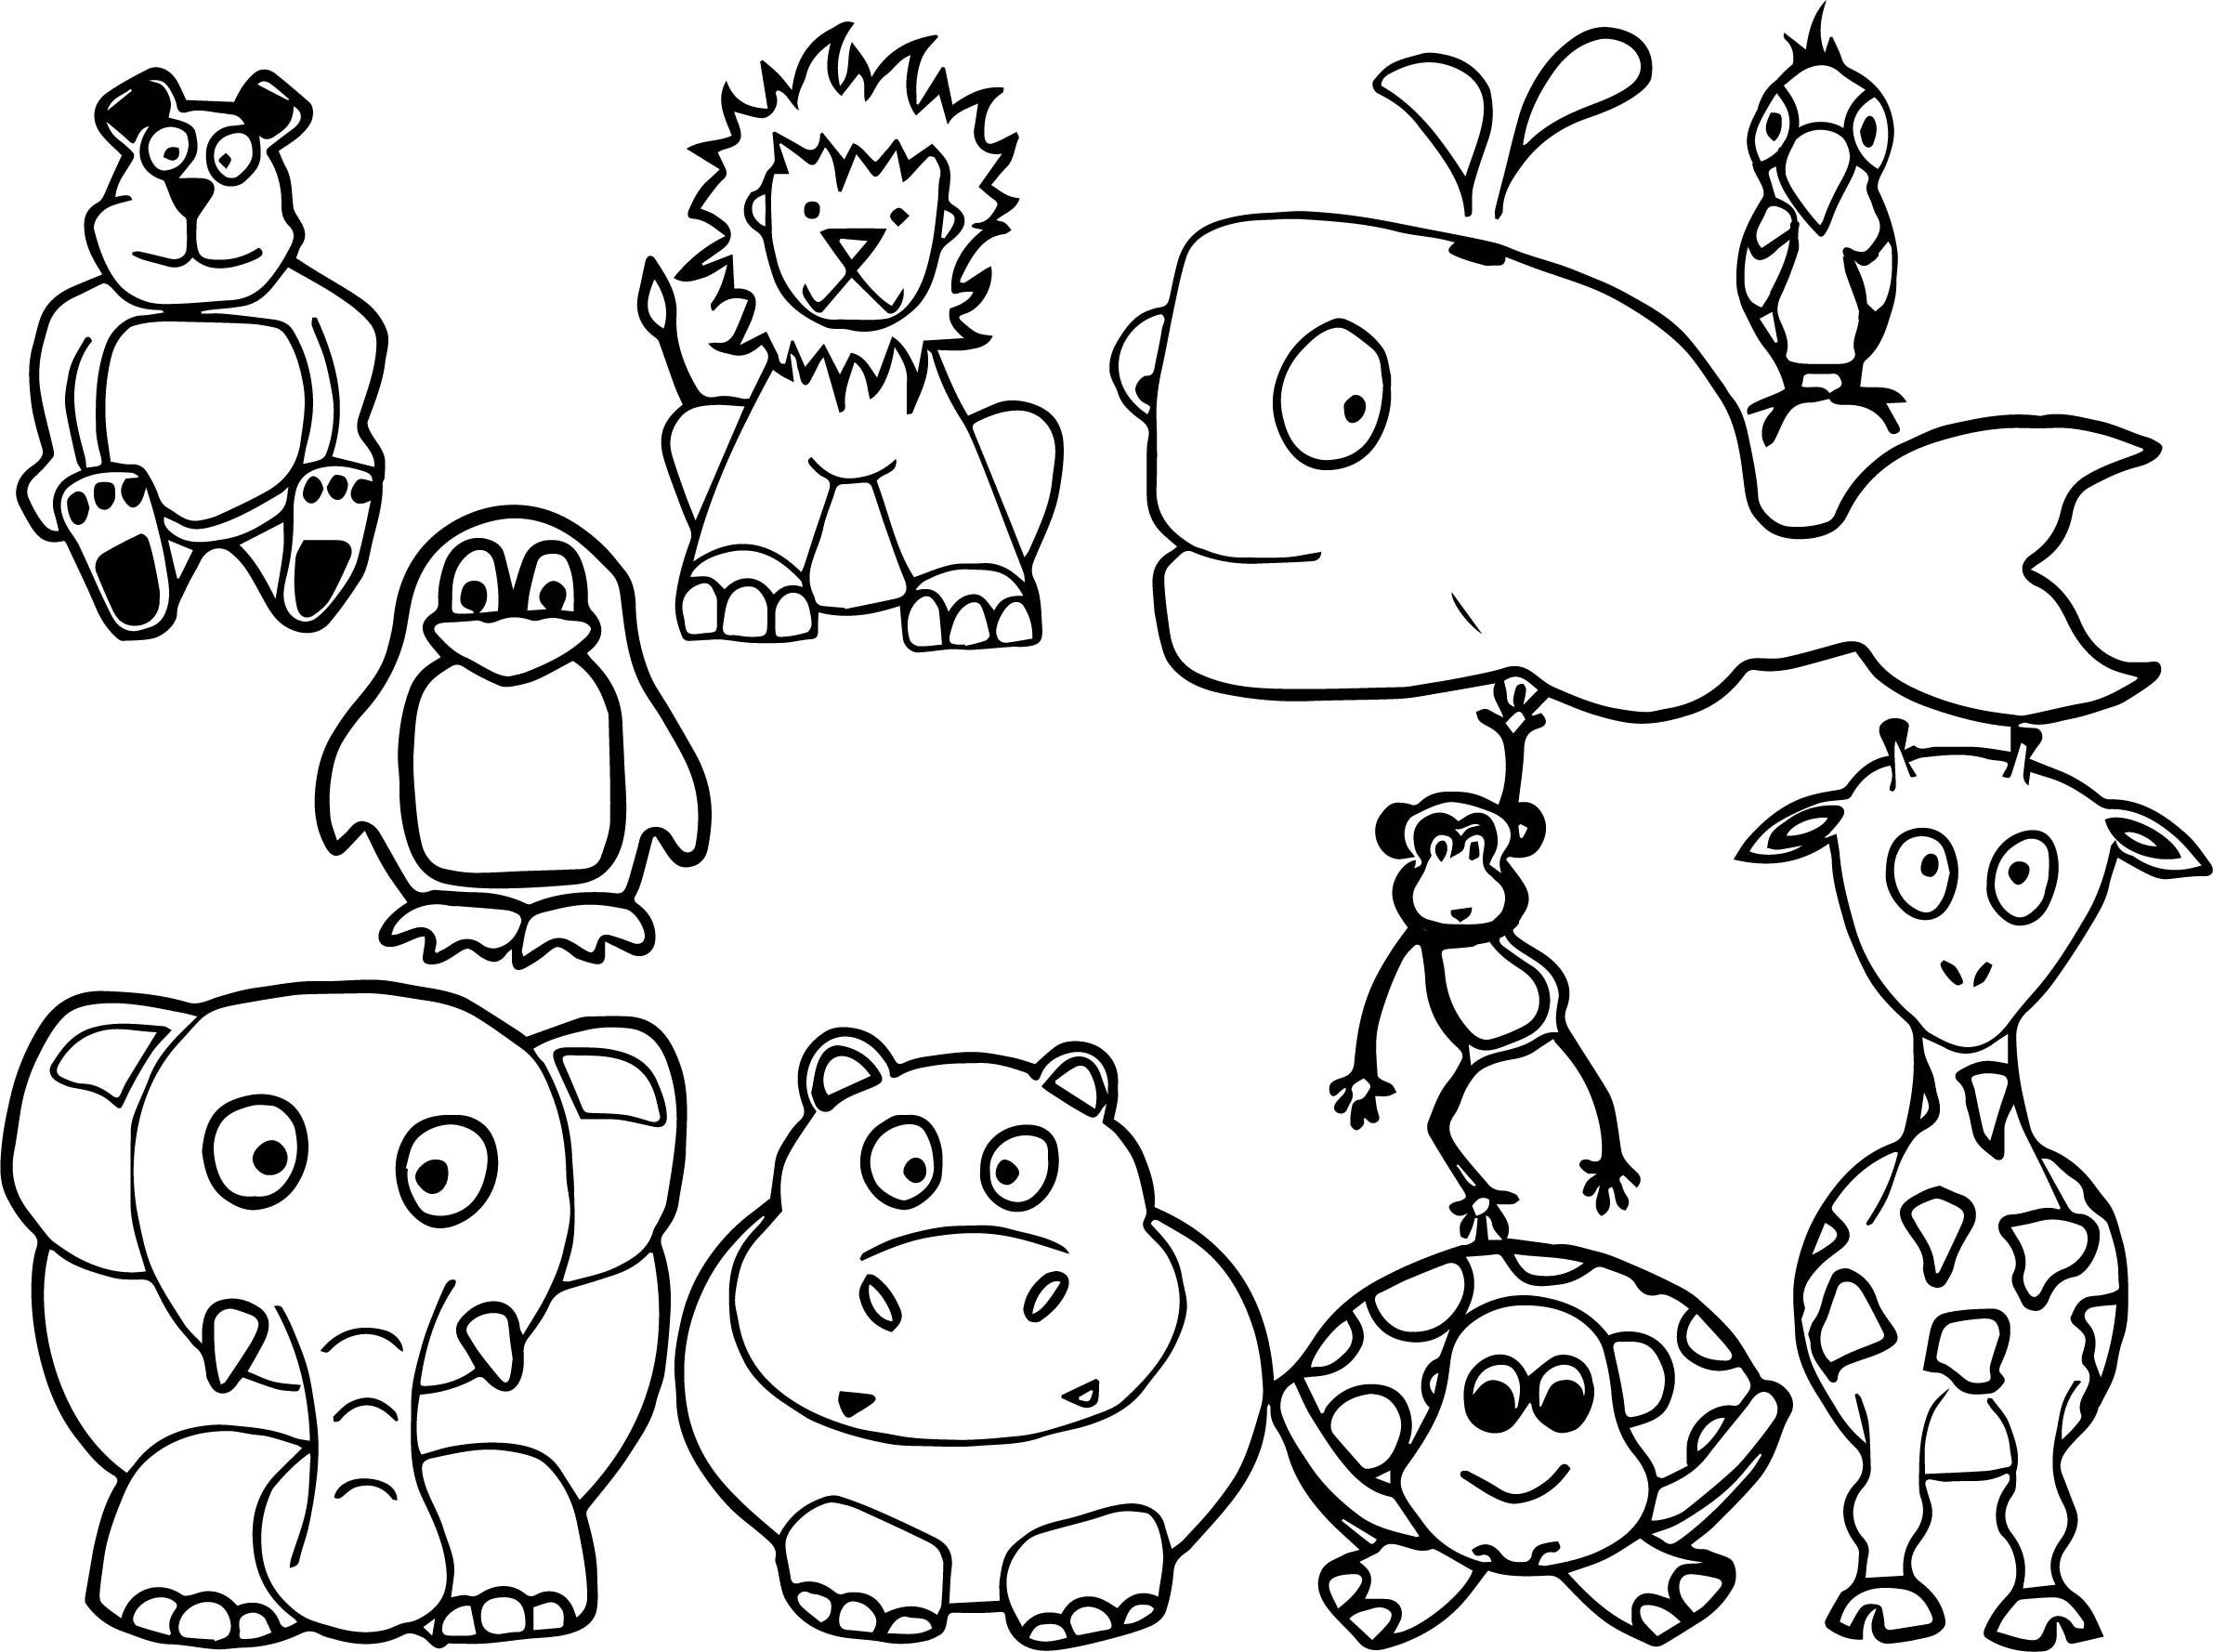 coloring animal pictures to colour top 10 free printable farm animals coloring pages online colour animal pictures coloring to